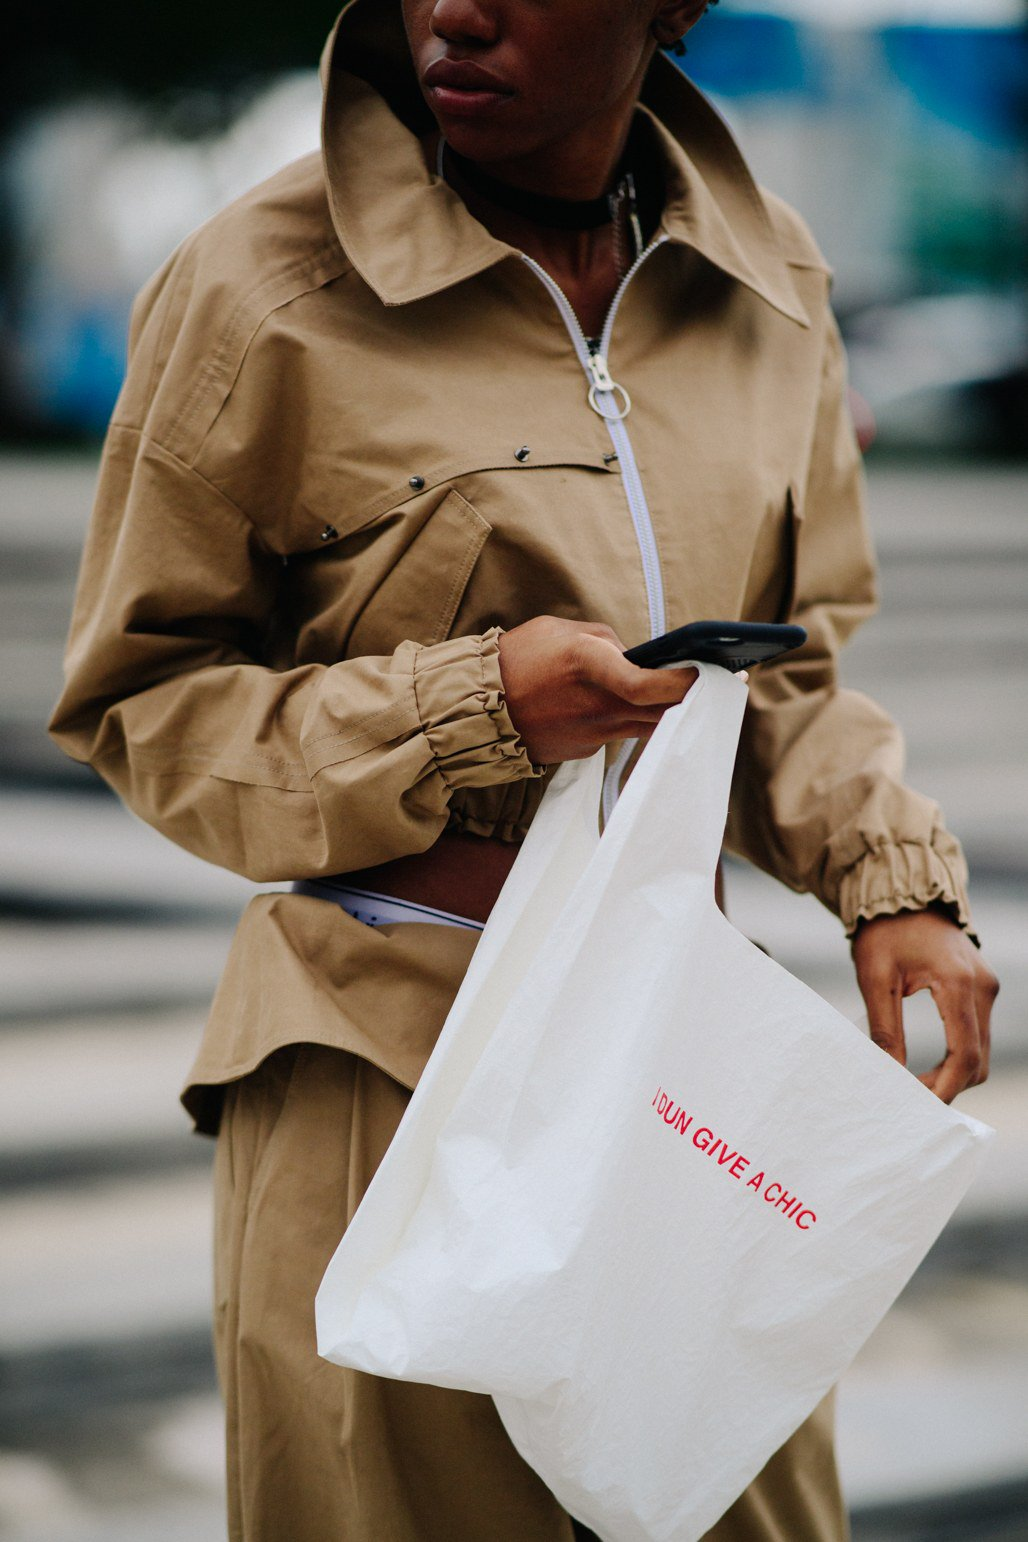 See what the cool kids in Shanghai are wearing for fall: https://t.co/8udRmufoeV https://t.co/vRwSmMpiFa